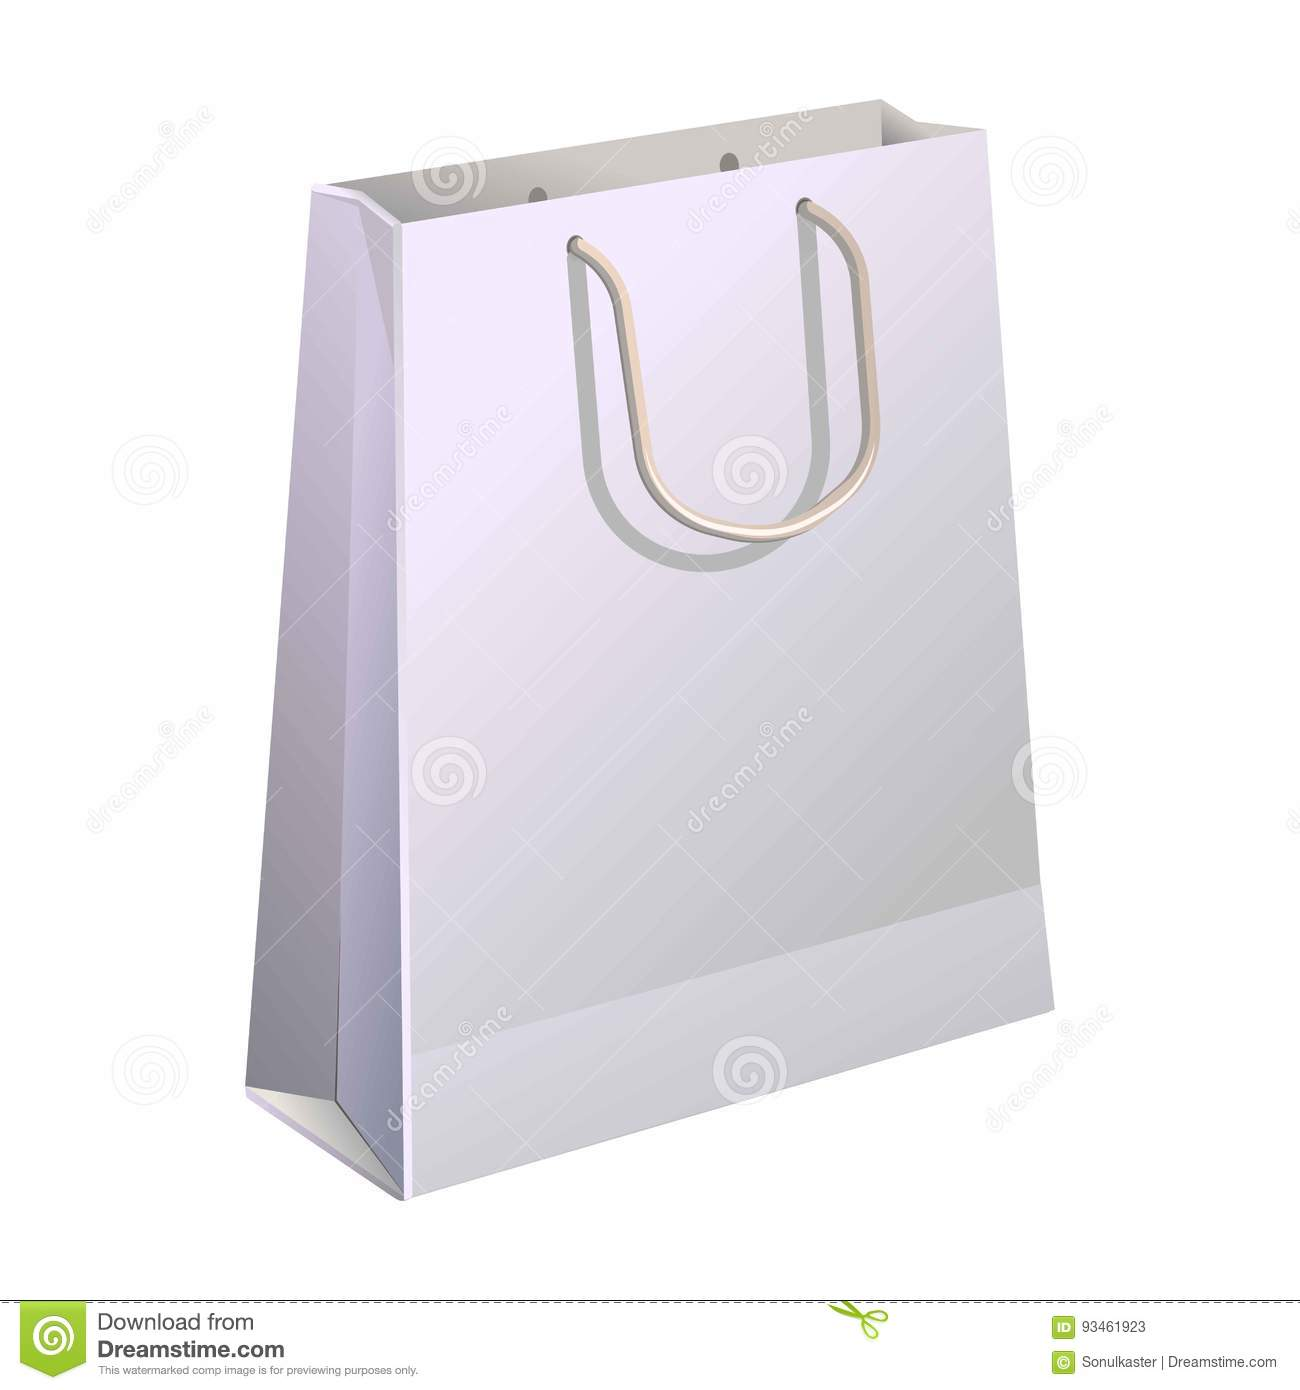 Eco package banner in flat cartoon style. Paper shopping bag